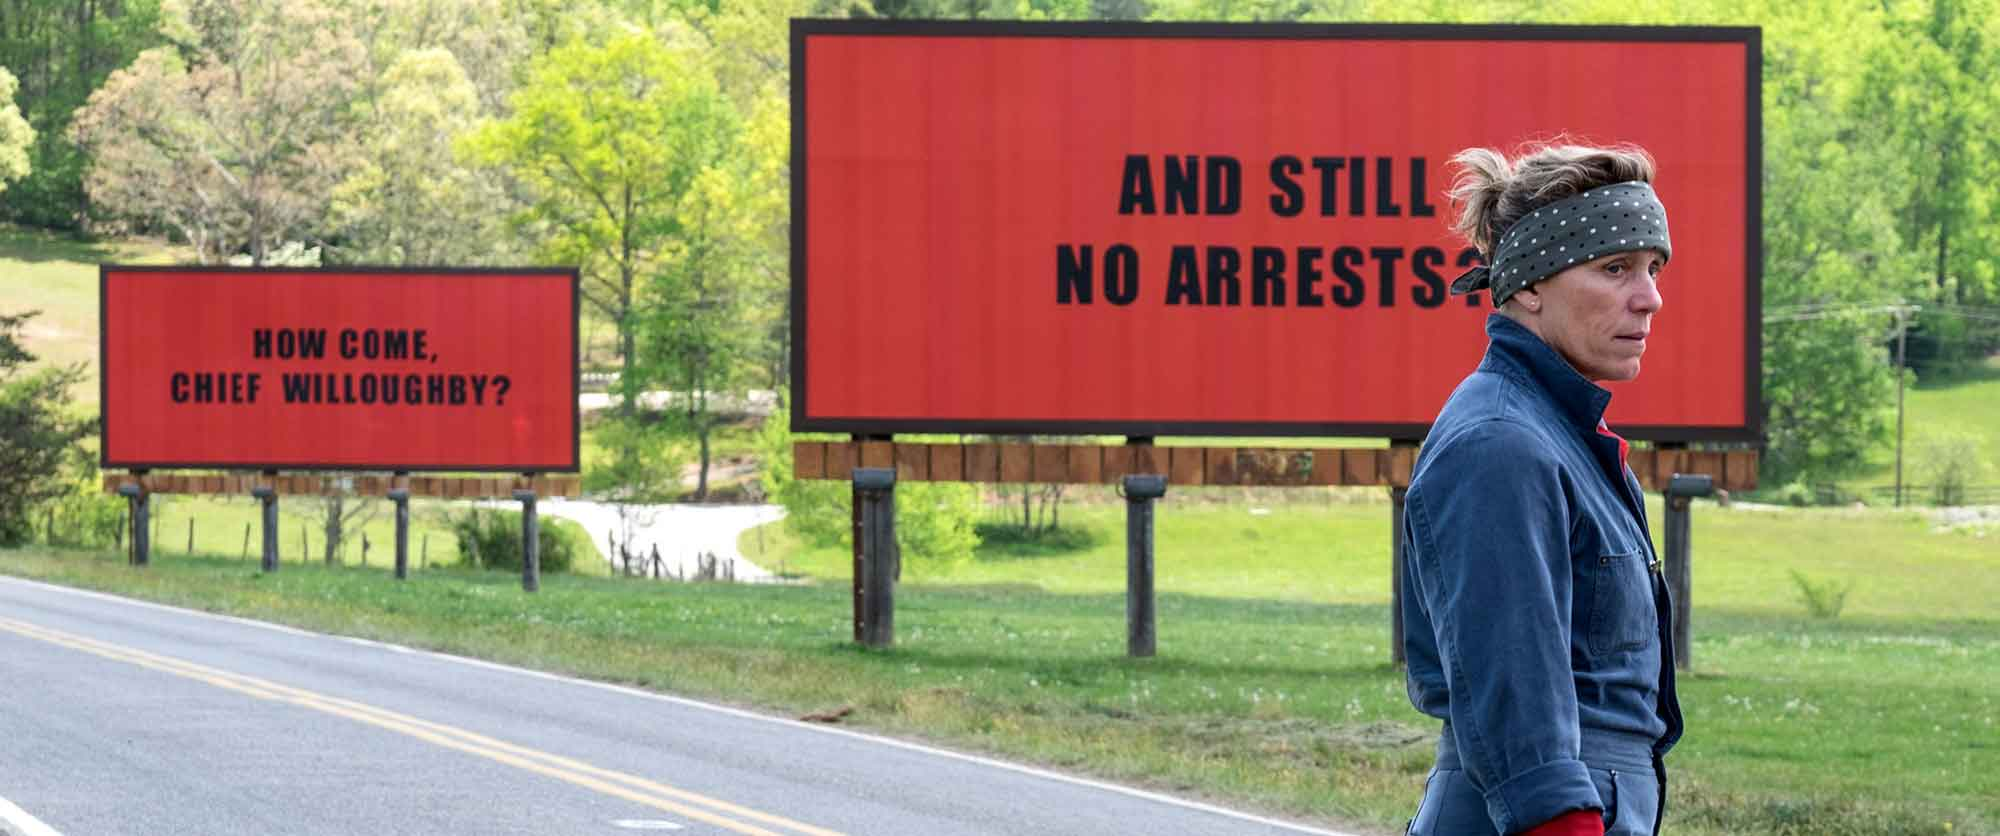 Three-Billboards-Outside-Ebbing-Missouri-Frances-McDormand copy.jpg